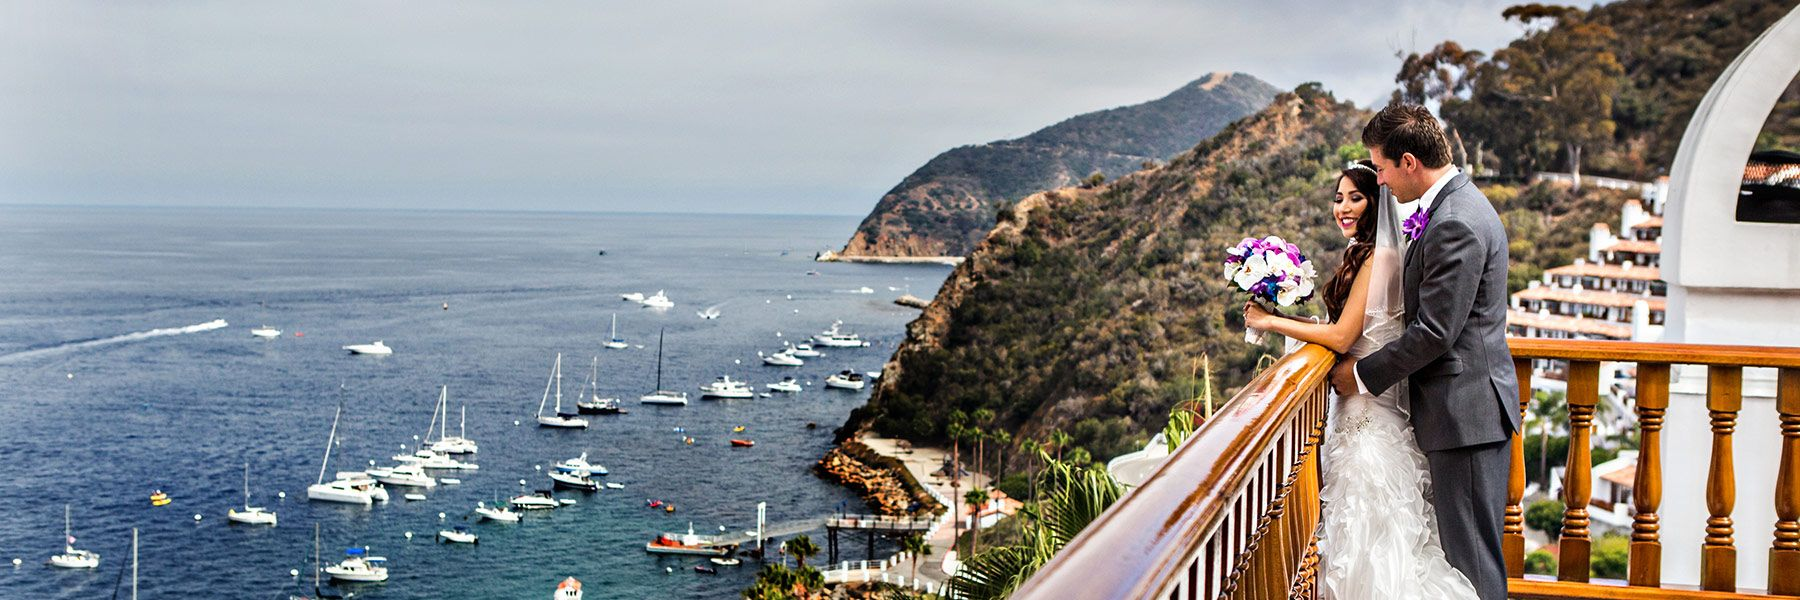 Catalina Island Weddings and renewals are breathtaking